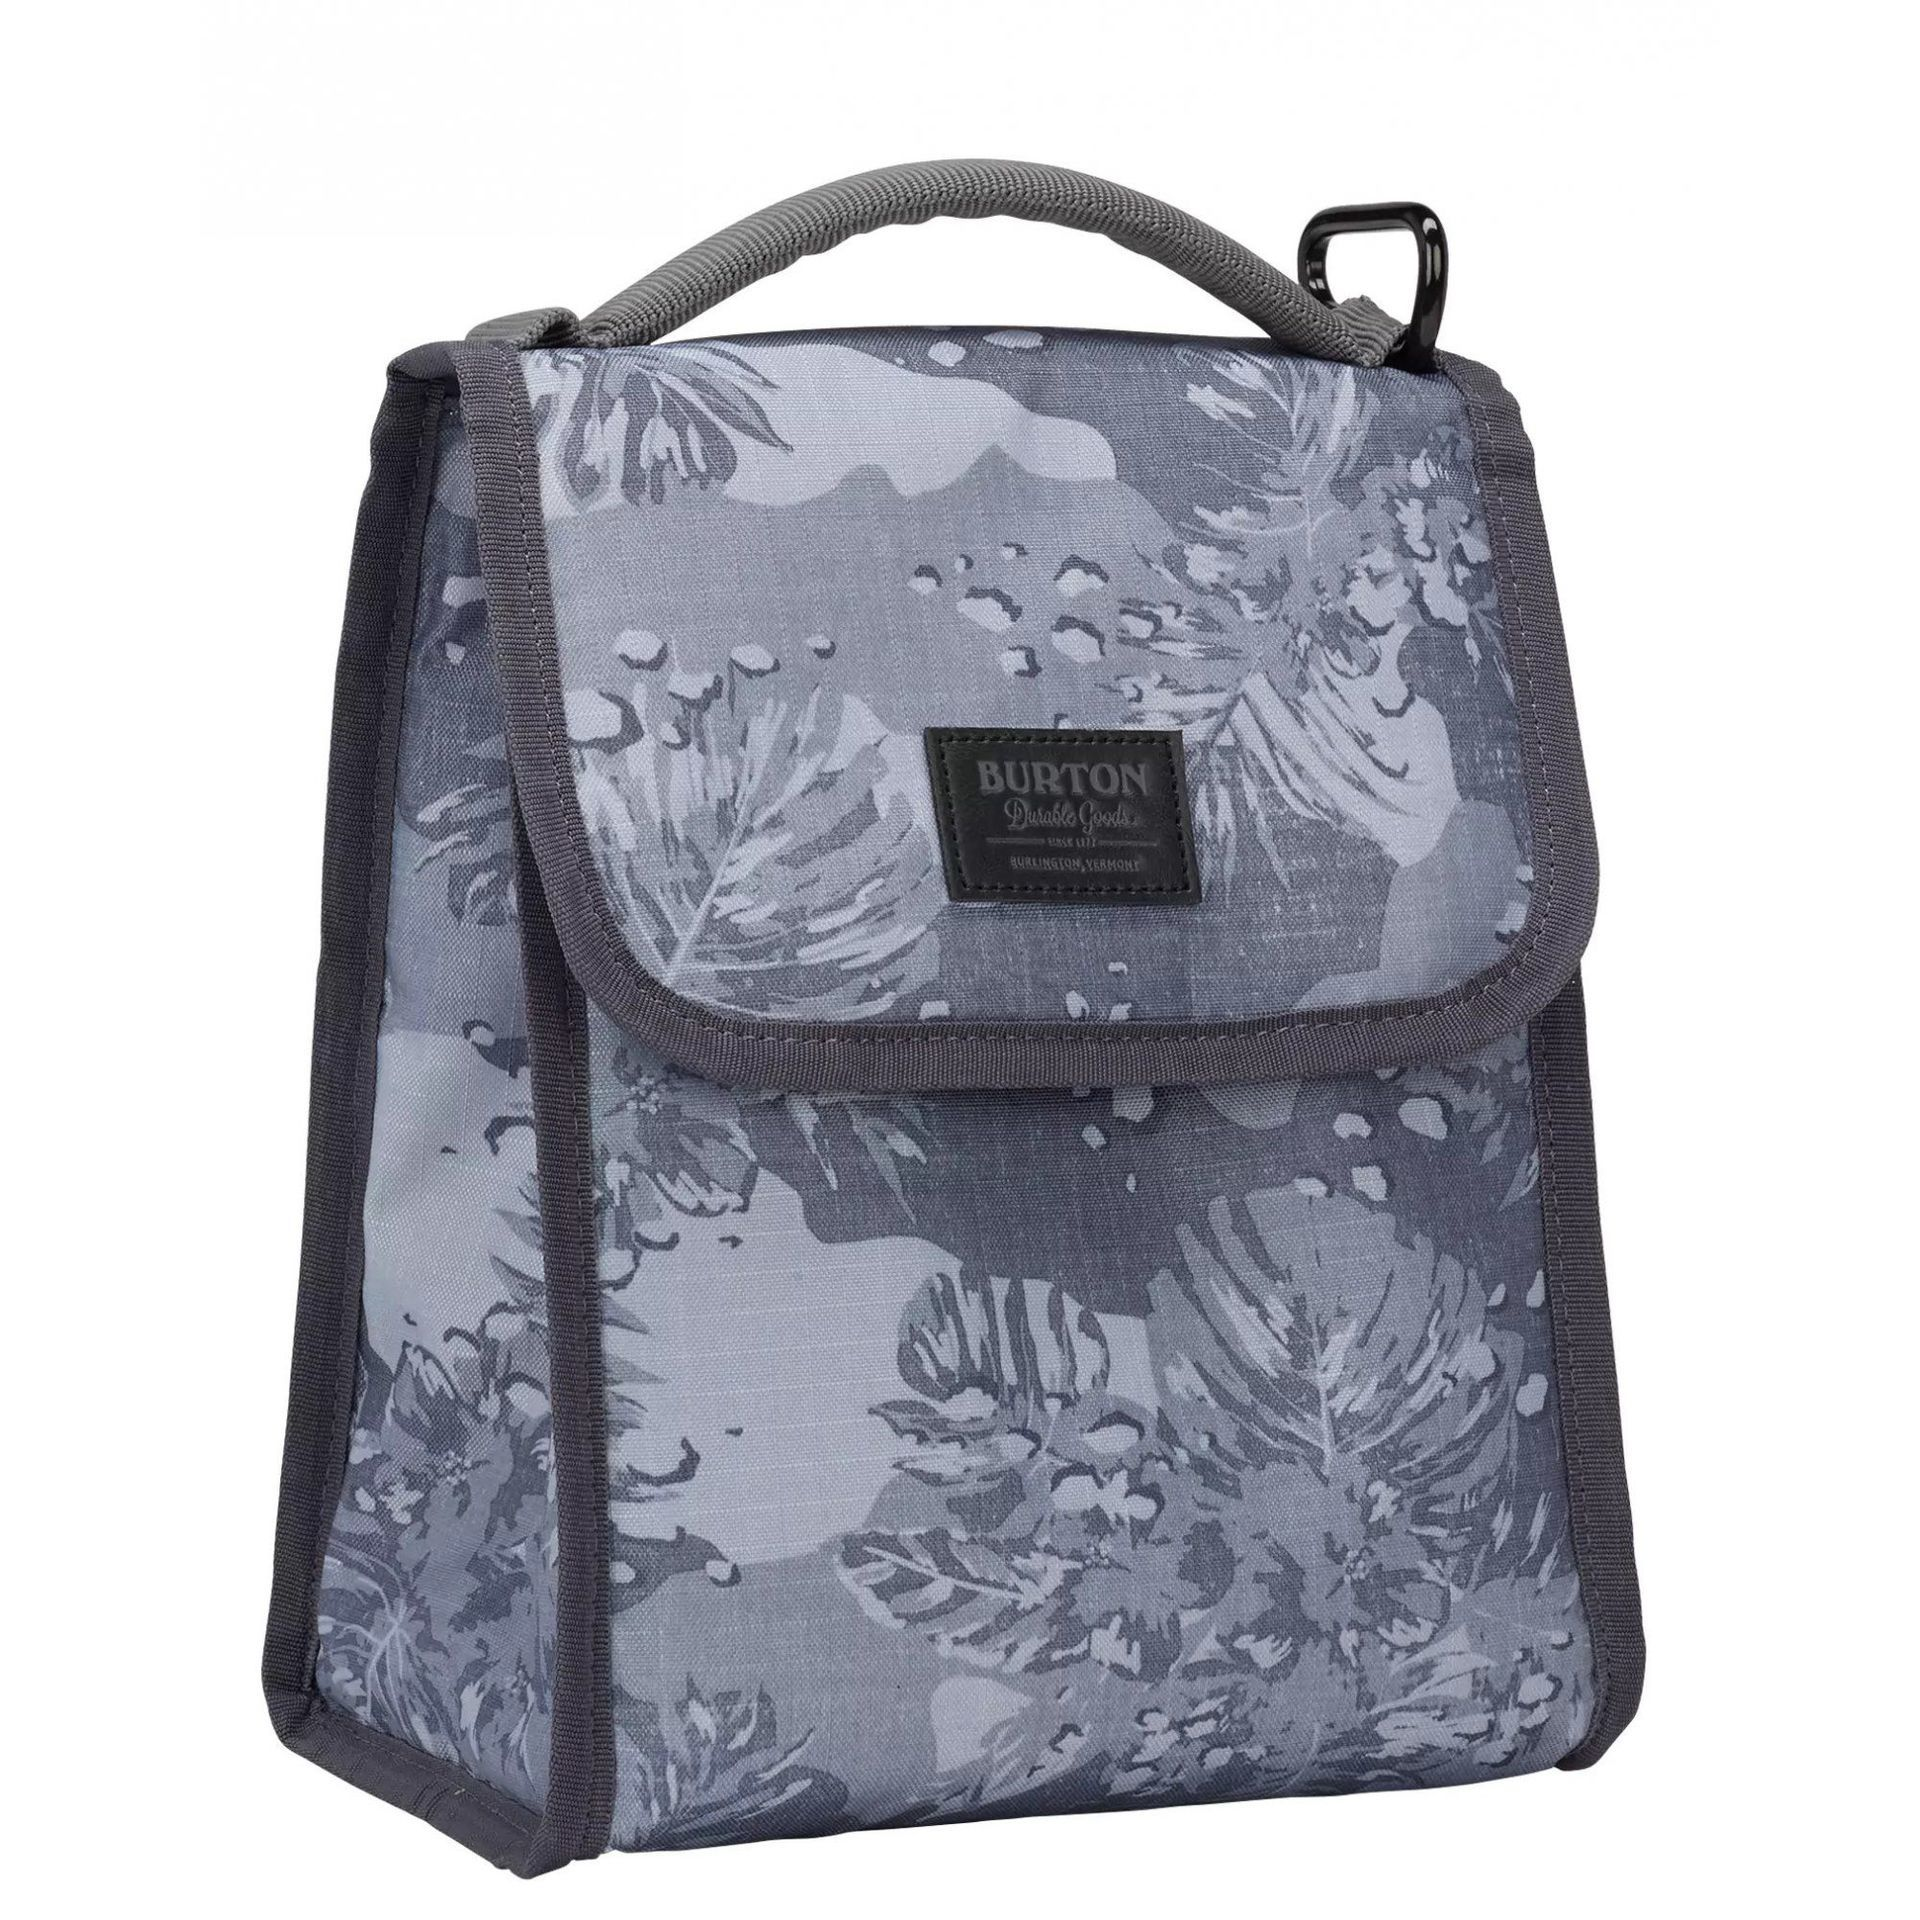 TORBA NA LUNCH BURTON LUNCH SACK FADED HAWAIIAN DESERT